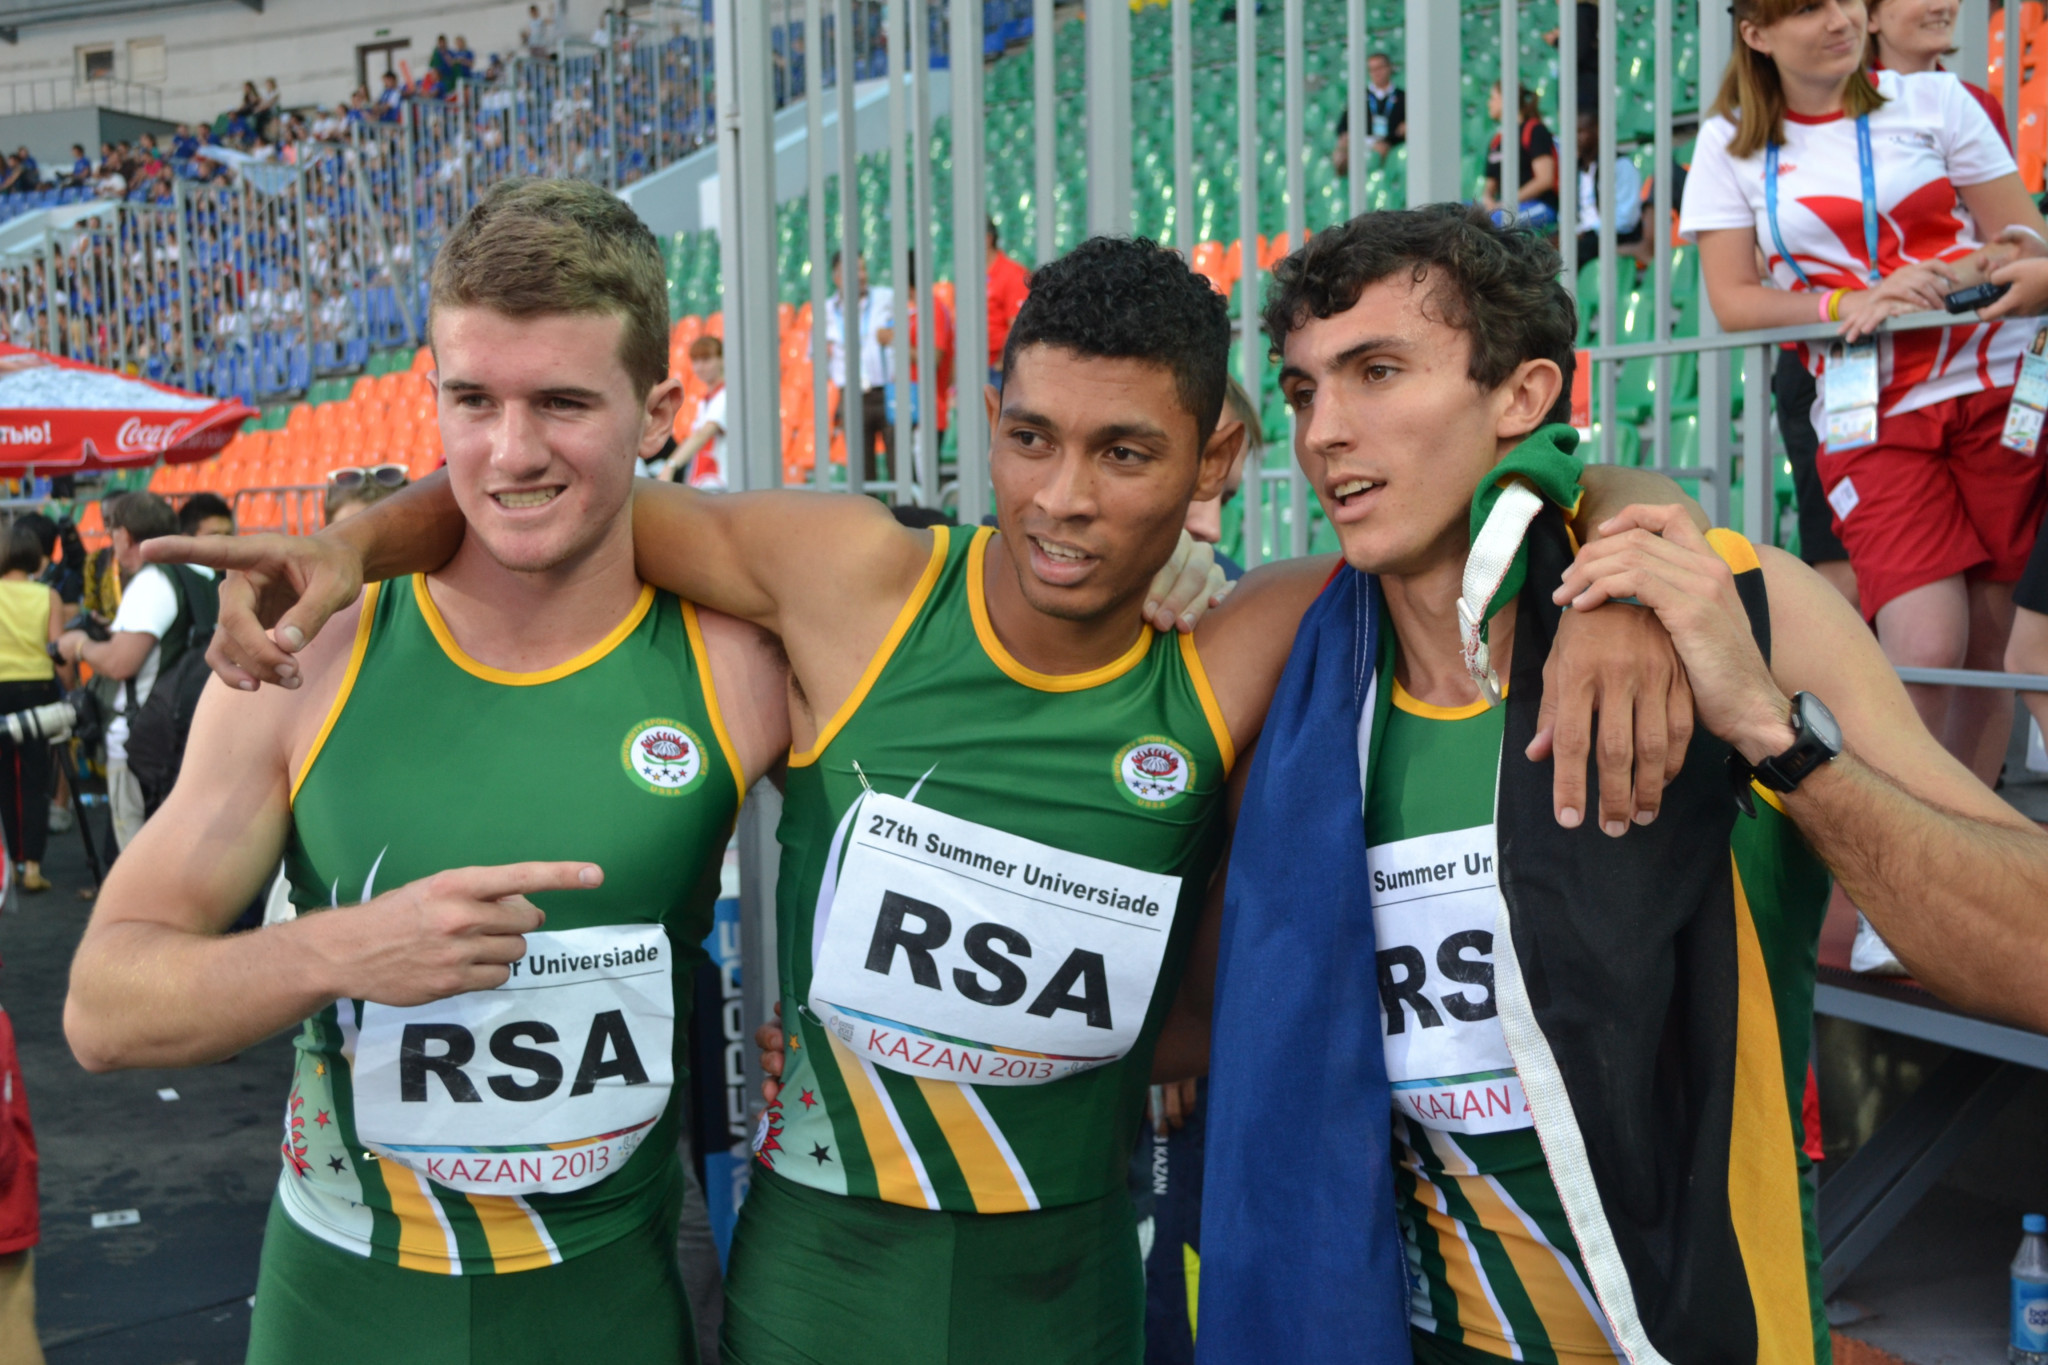 South Africa's van Niekerk claims Summer Universiade was platform for international success